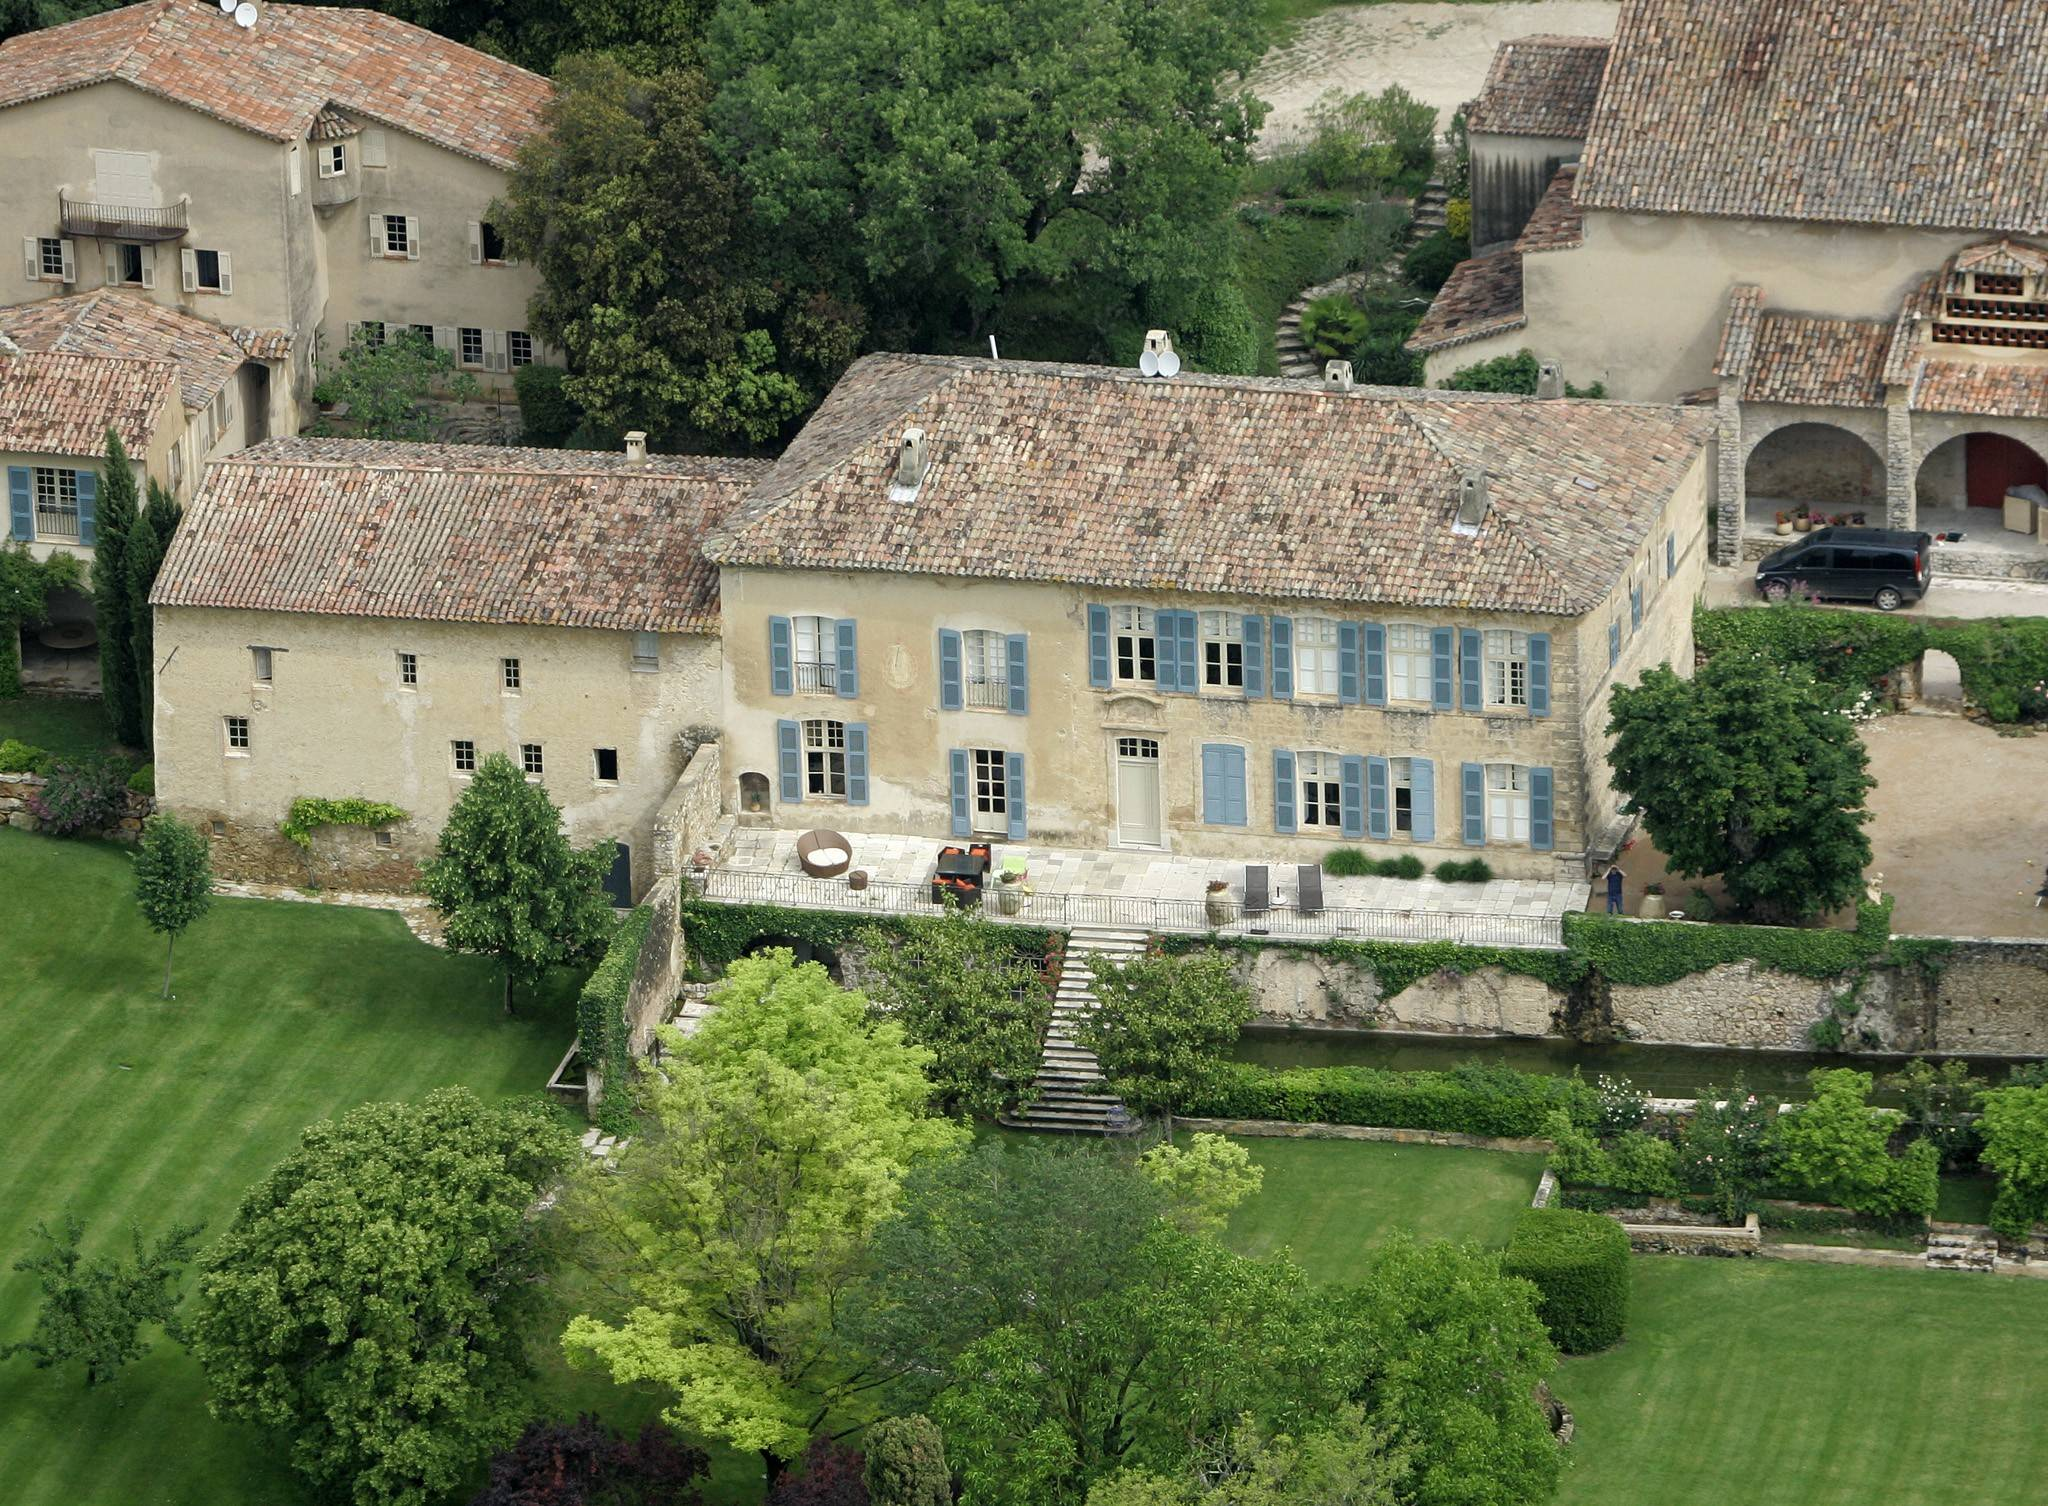 The Miraval property in Correns, France, which is owned by actors Angelina Jolie and Brad Pitt. Jolie and Pitt were married Saturday Aug. 23, 2014 in Chateau Miraval, France, says a spokesman for the couple.